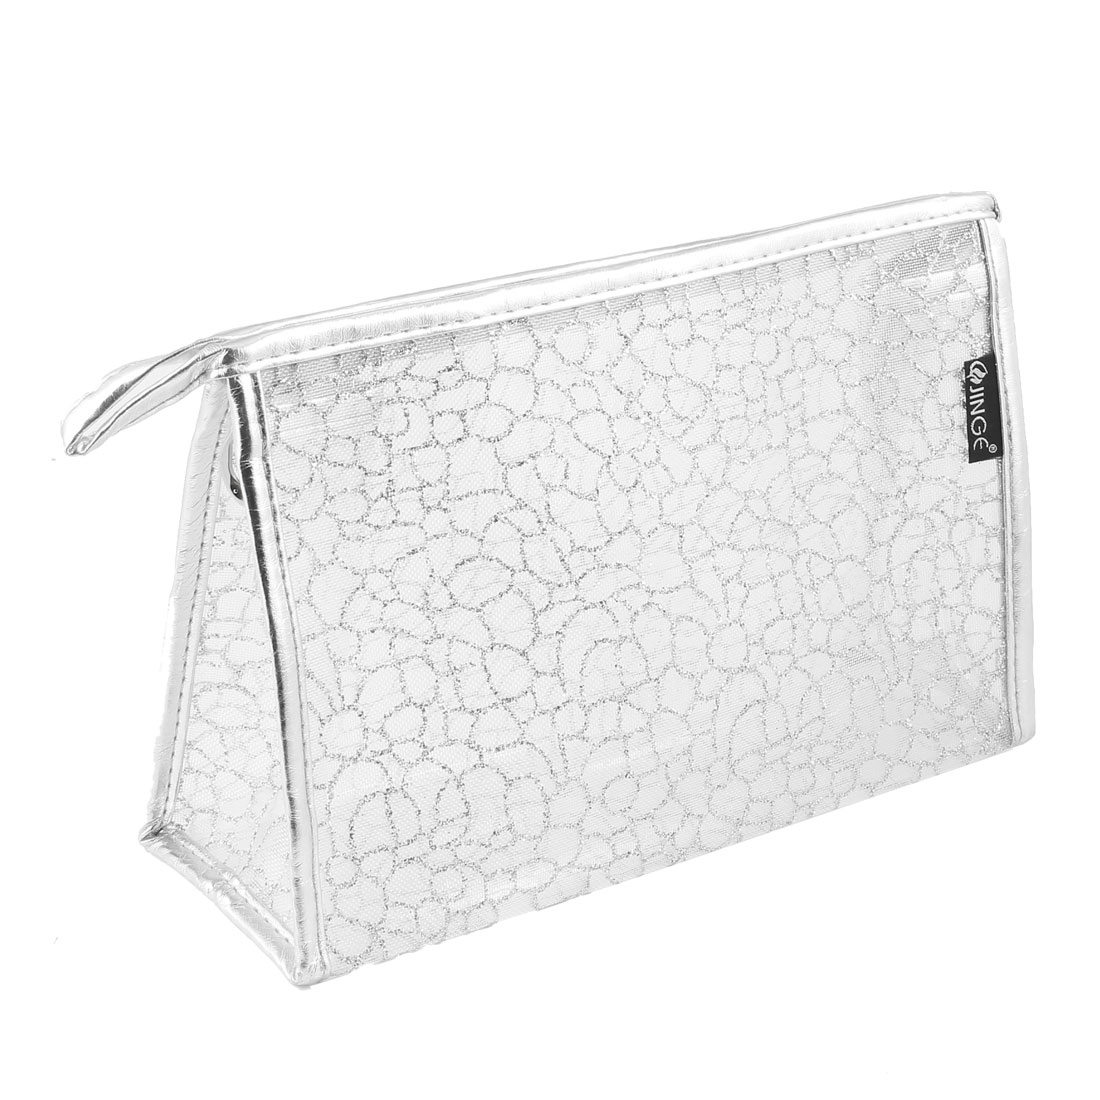 Silver Tone Meshy Exterior Zippered PVC Nylon Cosmetic Makeup Bag Case Holder Organizer